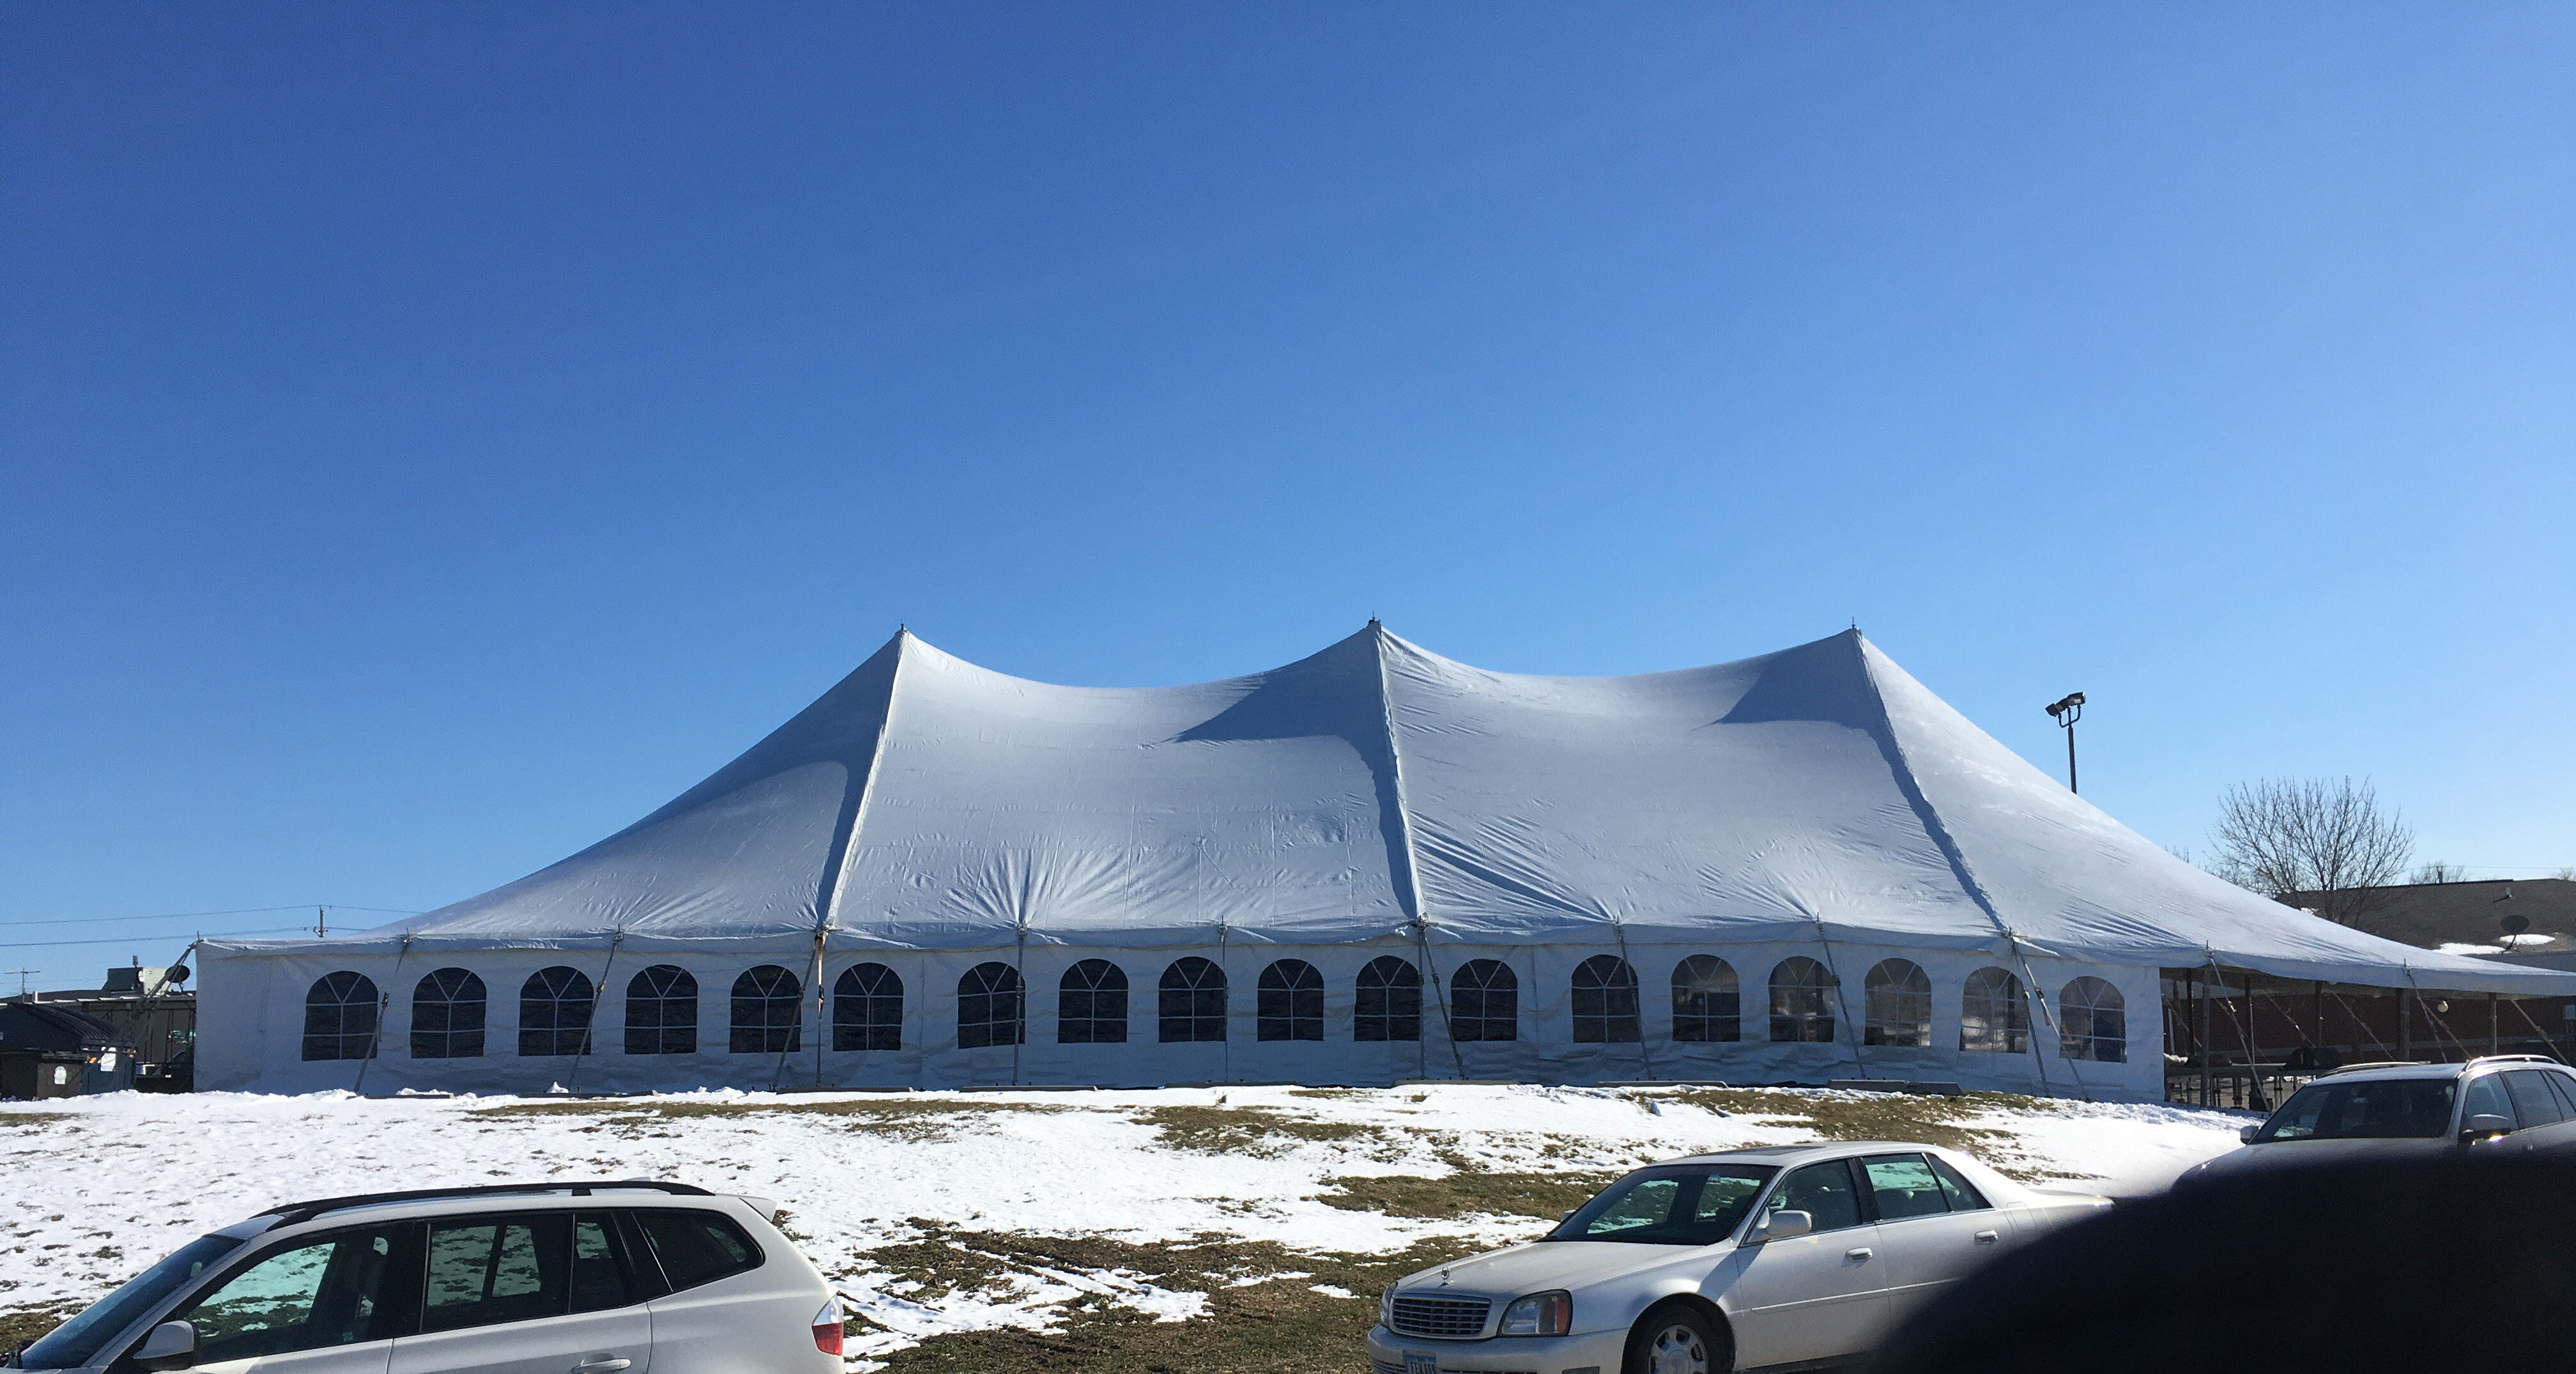 80ft X 120ft Rope& Pole Event Tent Rental In Iowa, Illinois, Missouri + Wisconsin